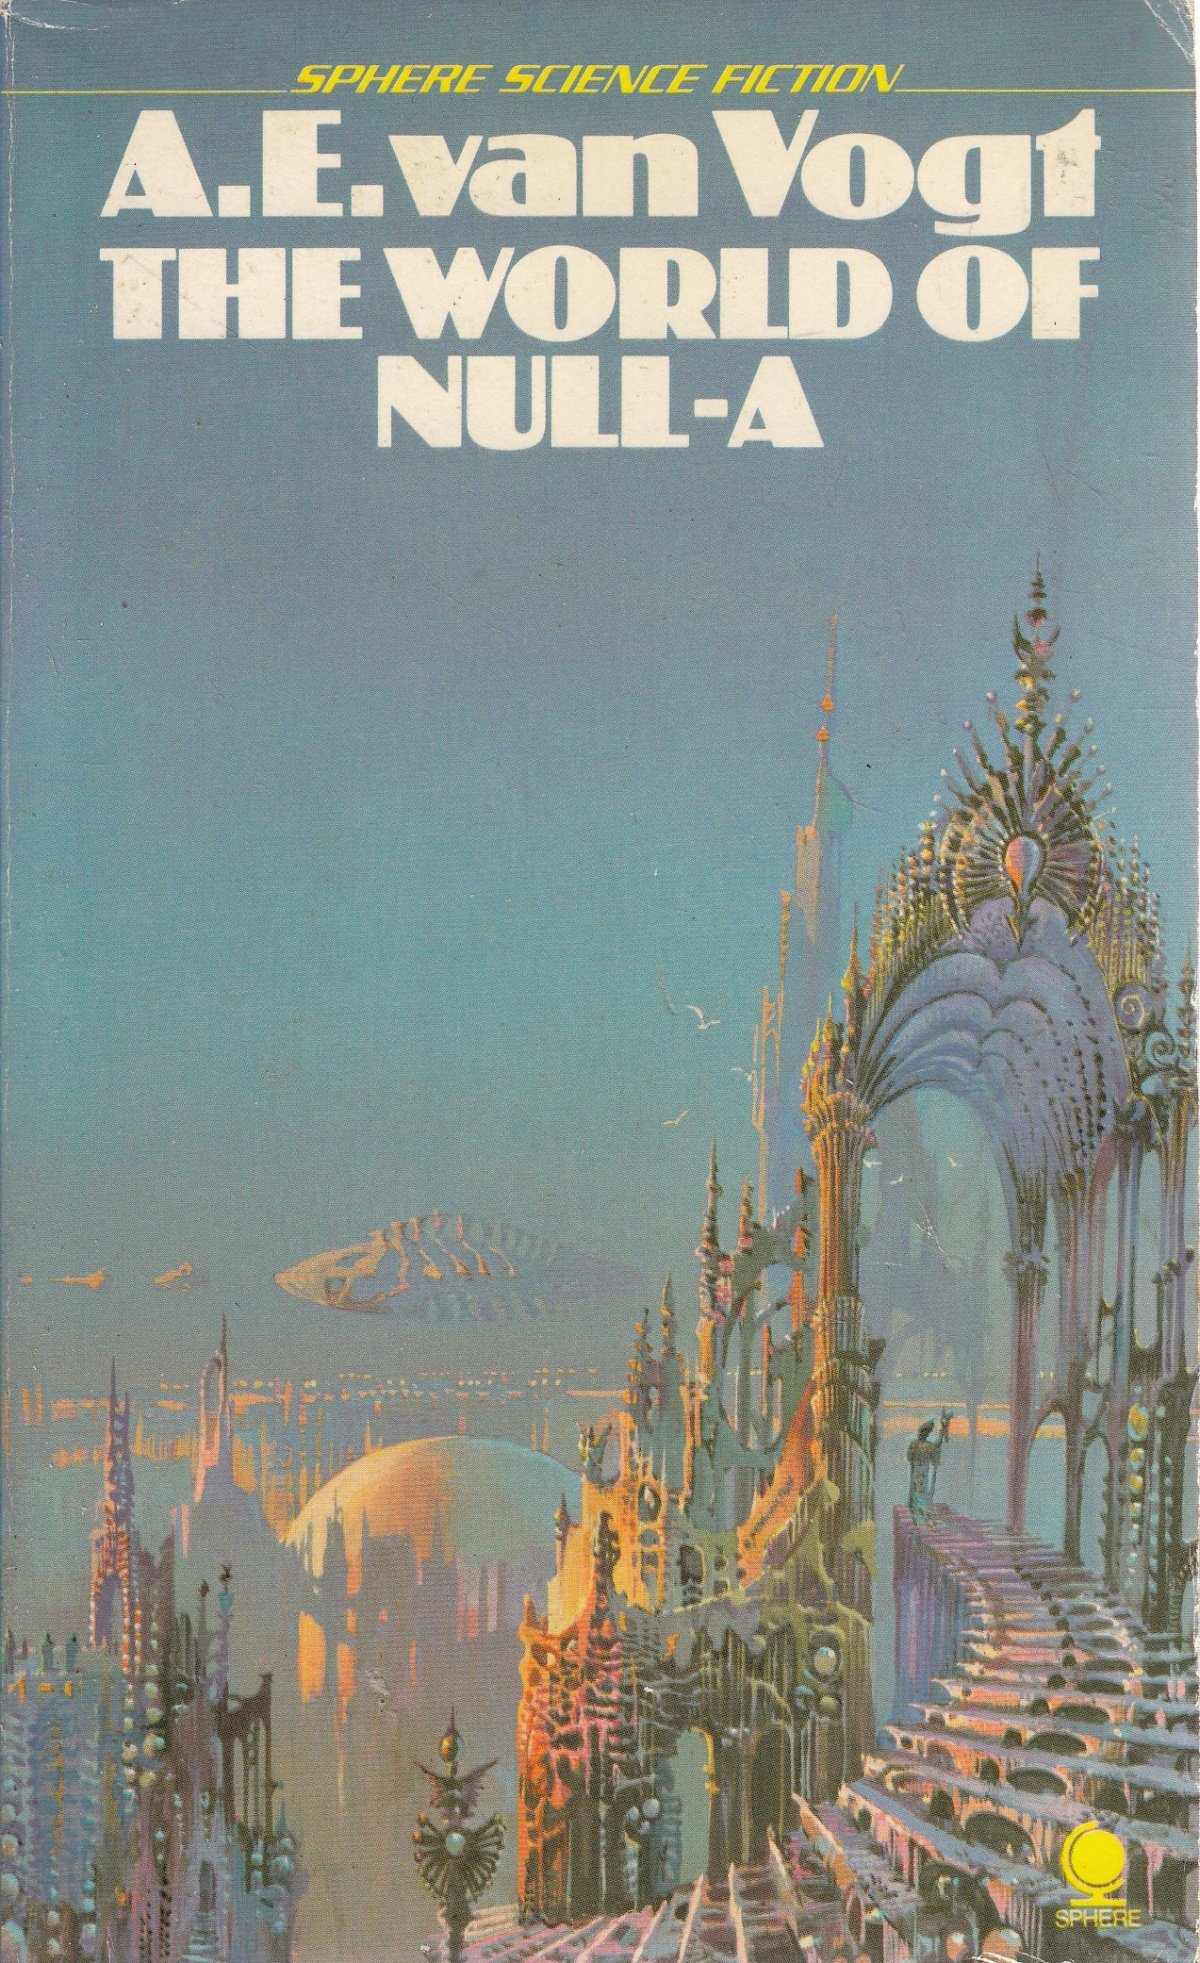 The World of Null-A - A.E. Van Vogt